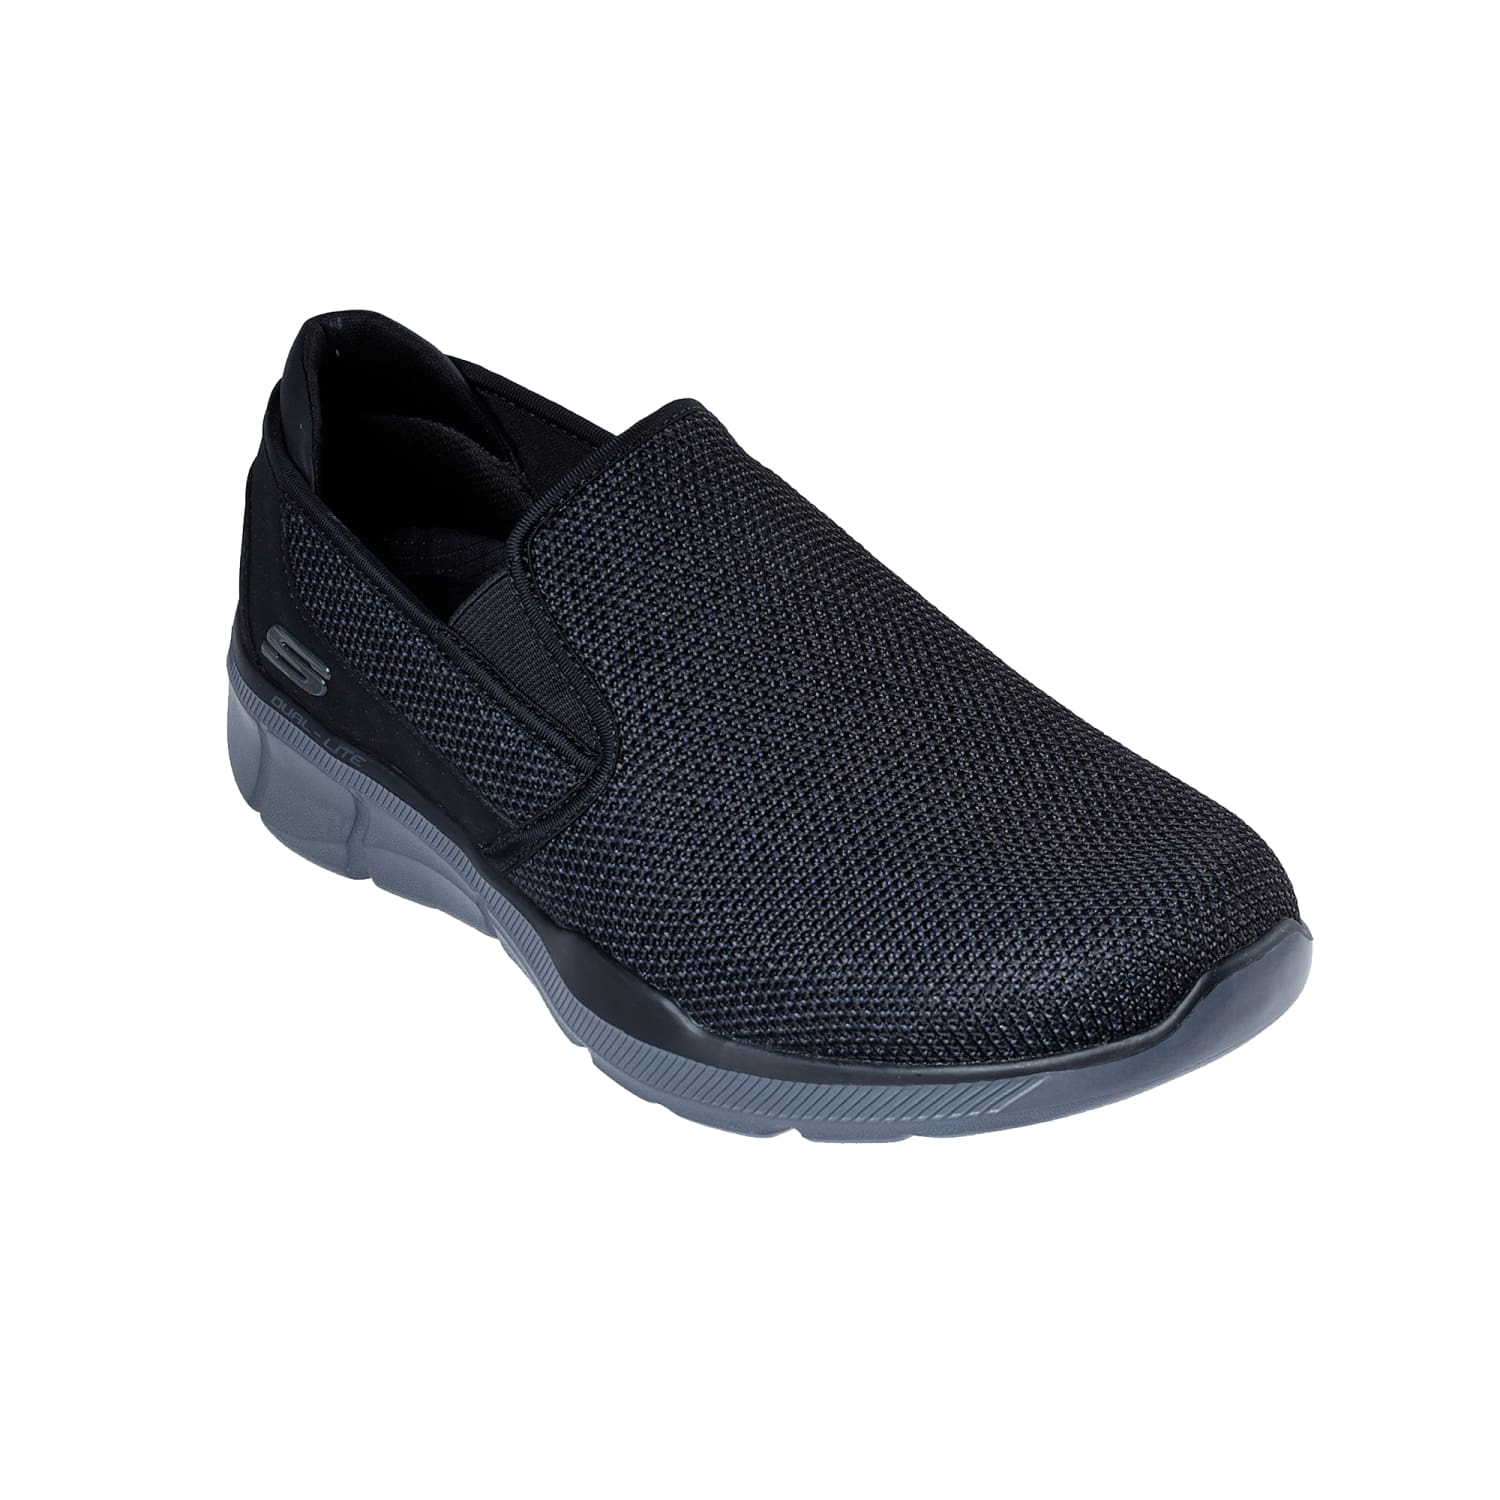 Skechers Trainers - 52937 - Sumnin - Black / Charcoal 1